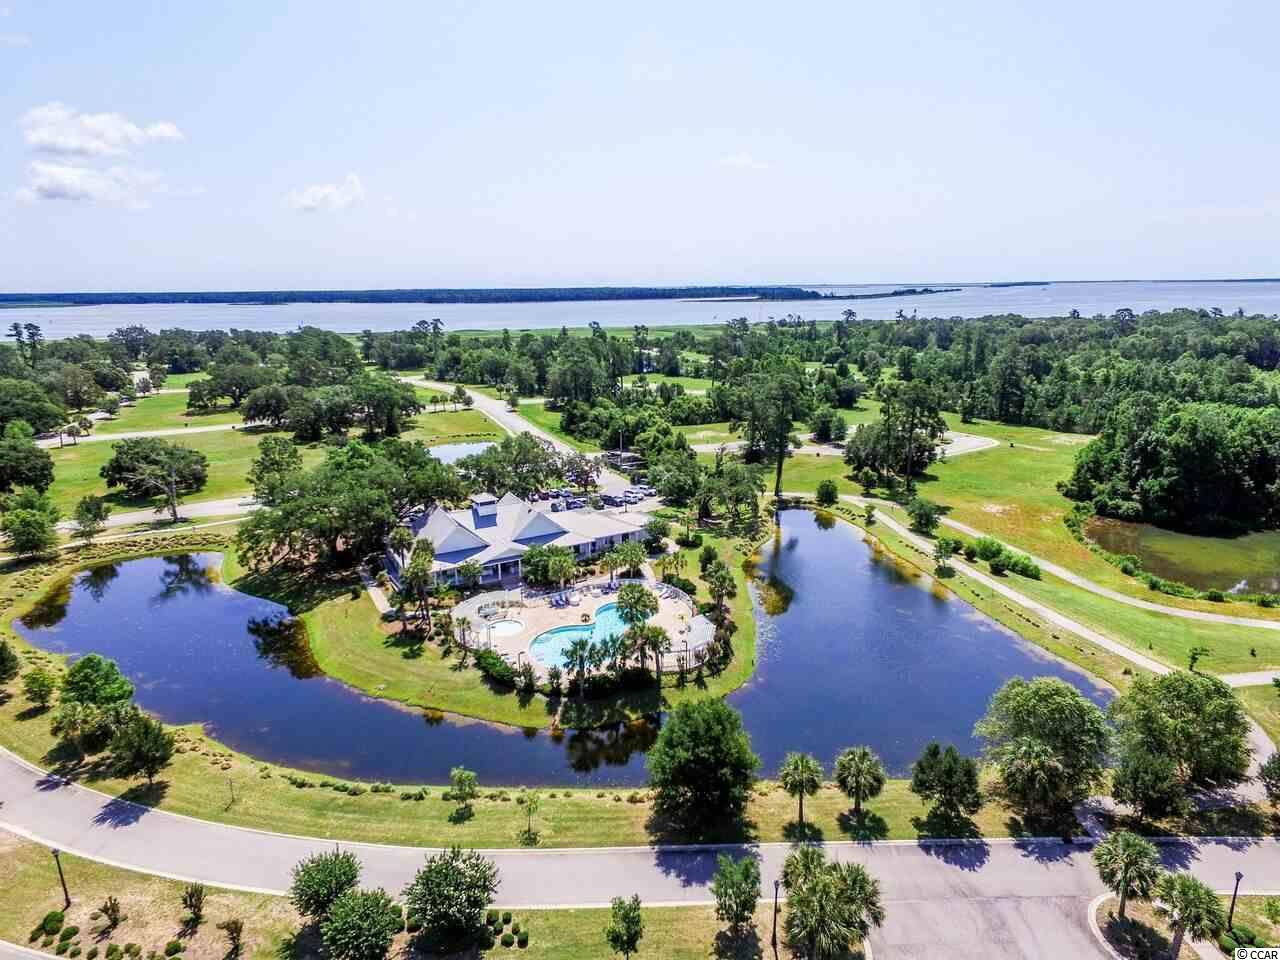 Land for Sale at 158 COMMANDERS ISLAND ROAD 158 COMMANDERS ISLAND ROAD Georgetown, South Carolina 29440 United States